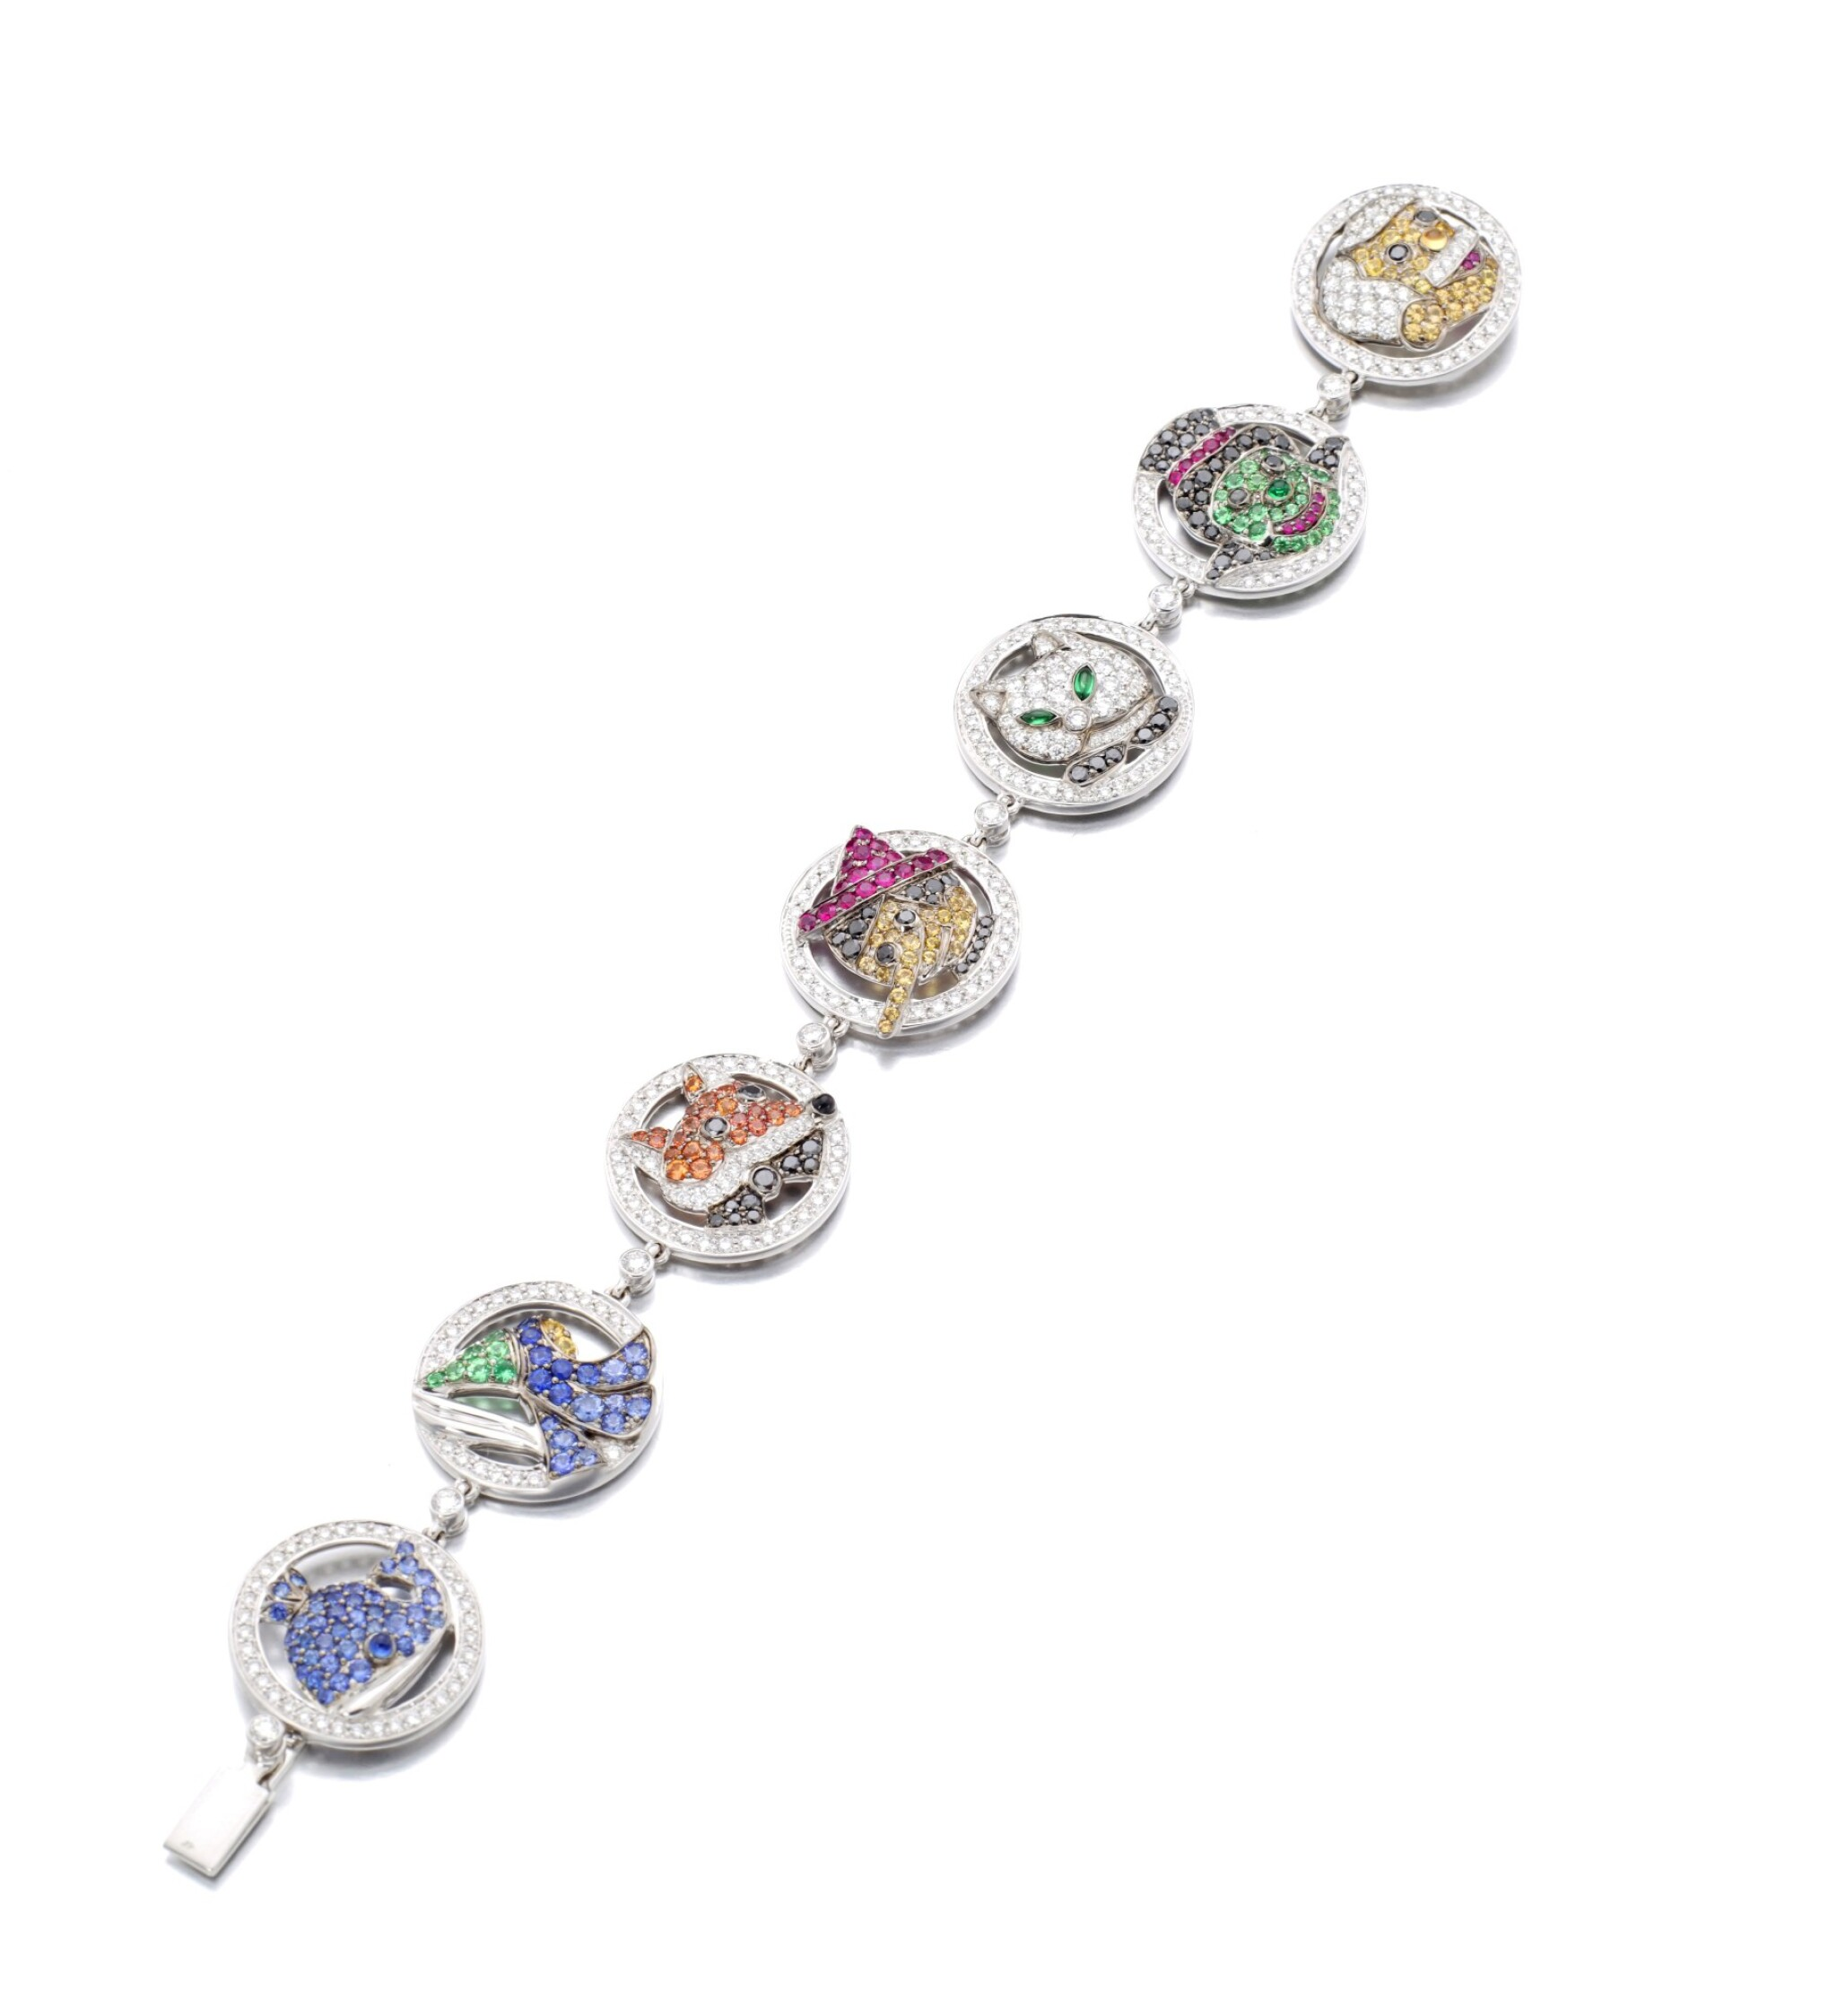 View full screen - View 1 of Lot 10. MICHELE DELLA VALLE   GEM SET AND DIAMOND BRACELET.